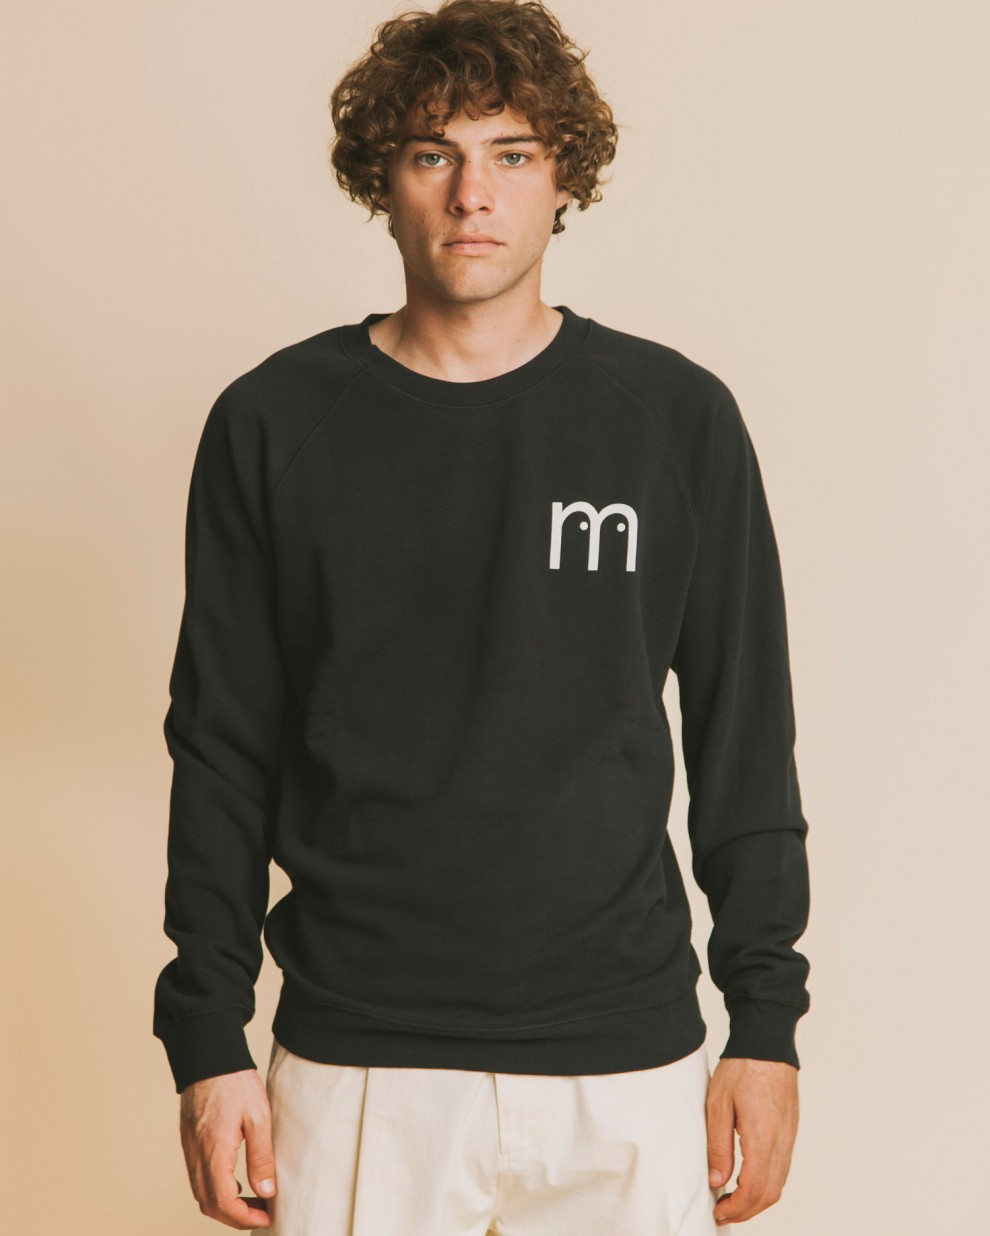 M Eyes sweatshirt